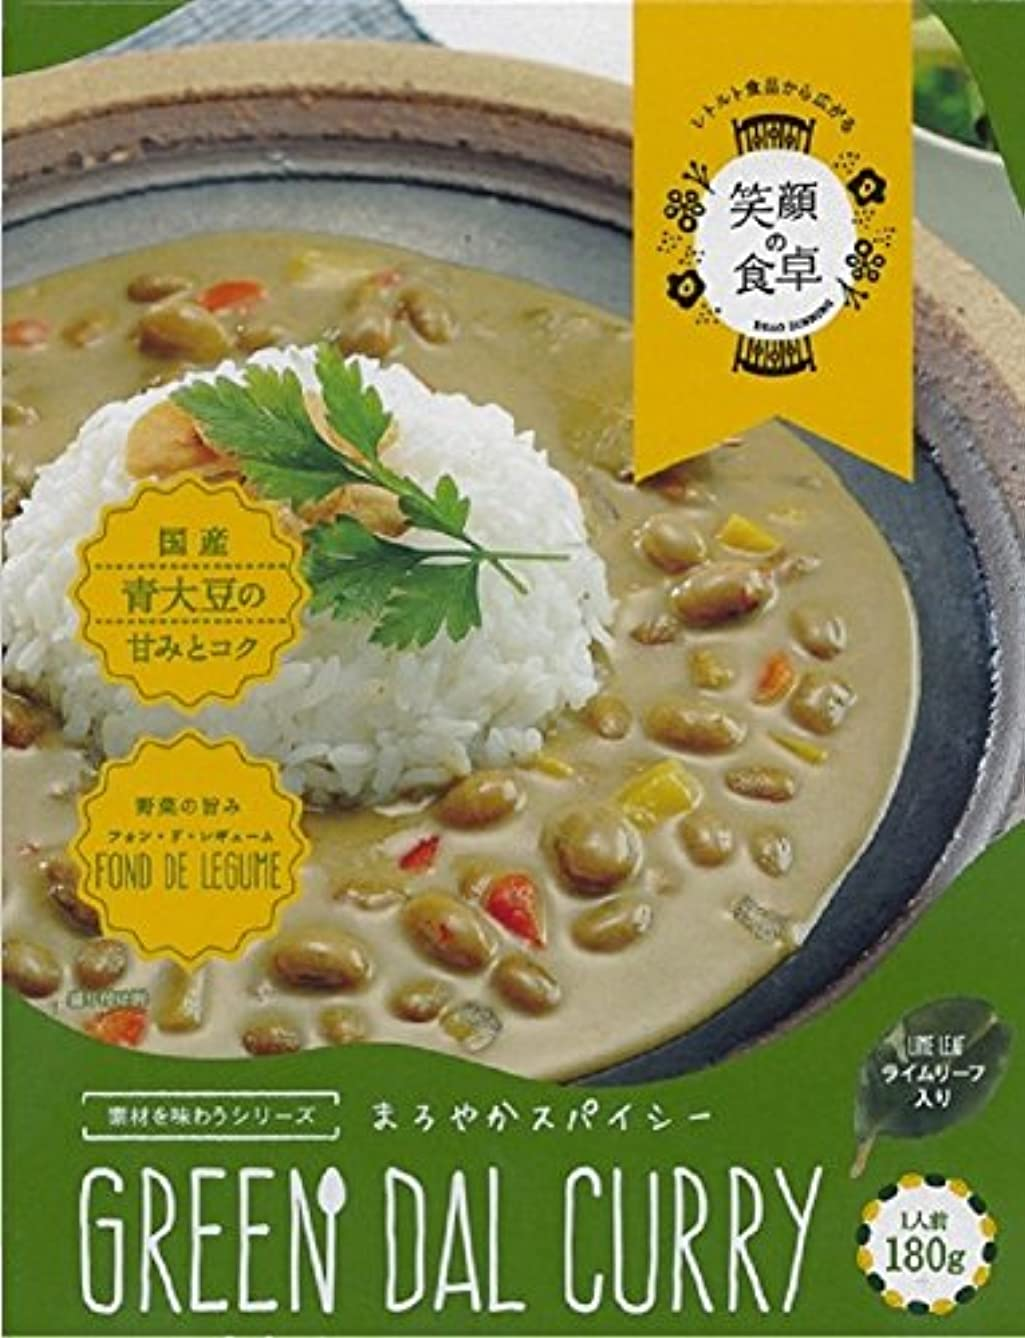 Keysystem 4991228112148 Due Date Attention> Okayama Prefecture Local 【Plenty Soy Green Curry】 (180 g), Clear